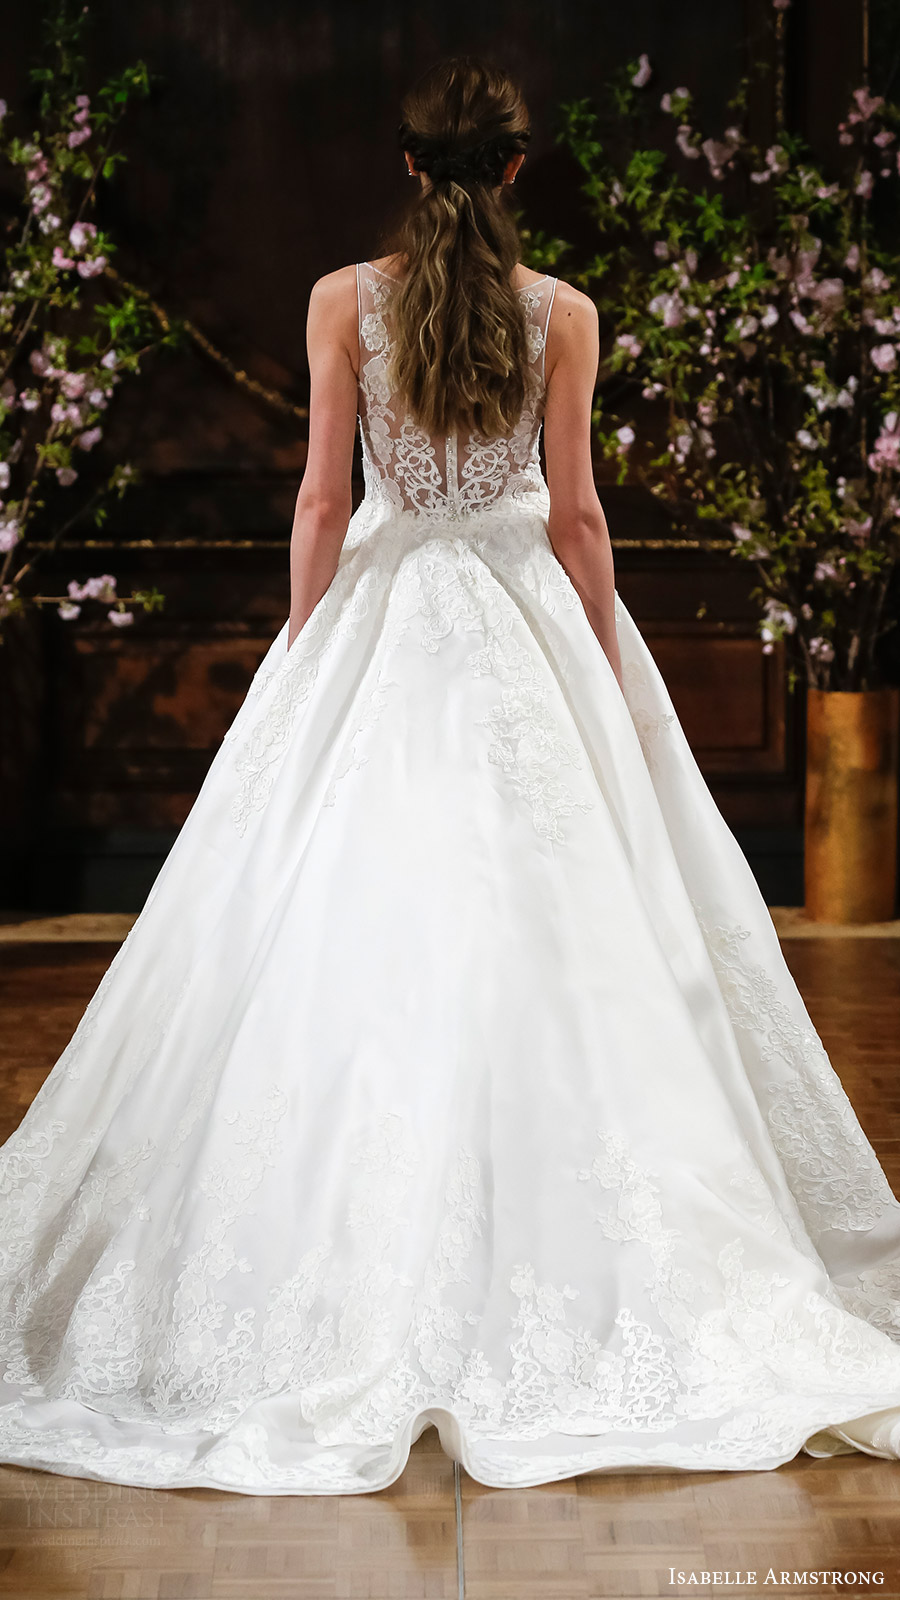 isabelle armstrong bridal spring 2017 sleeveless illusion bateau neck ball gown wedding dress (robyn) bv sheer back train romantic